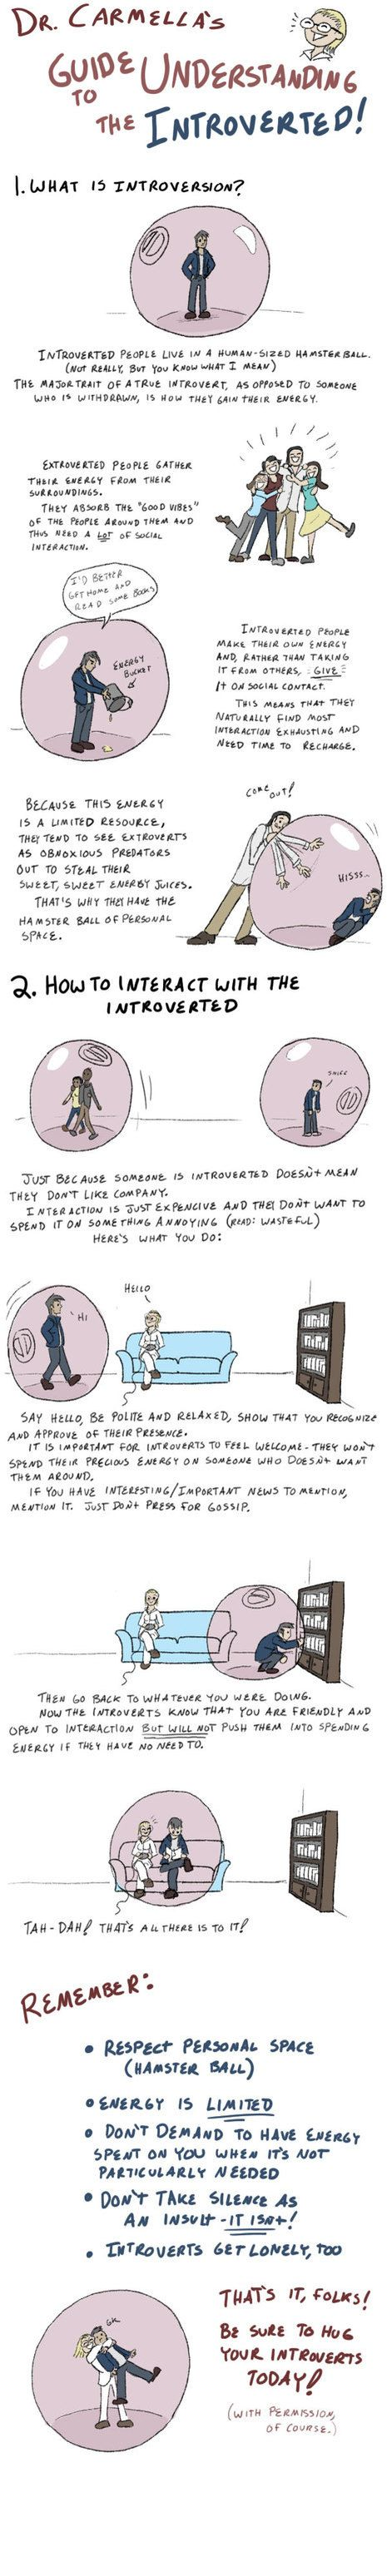 how to become more introverted